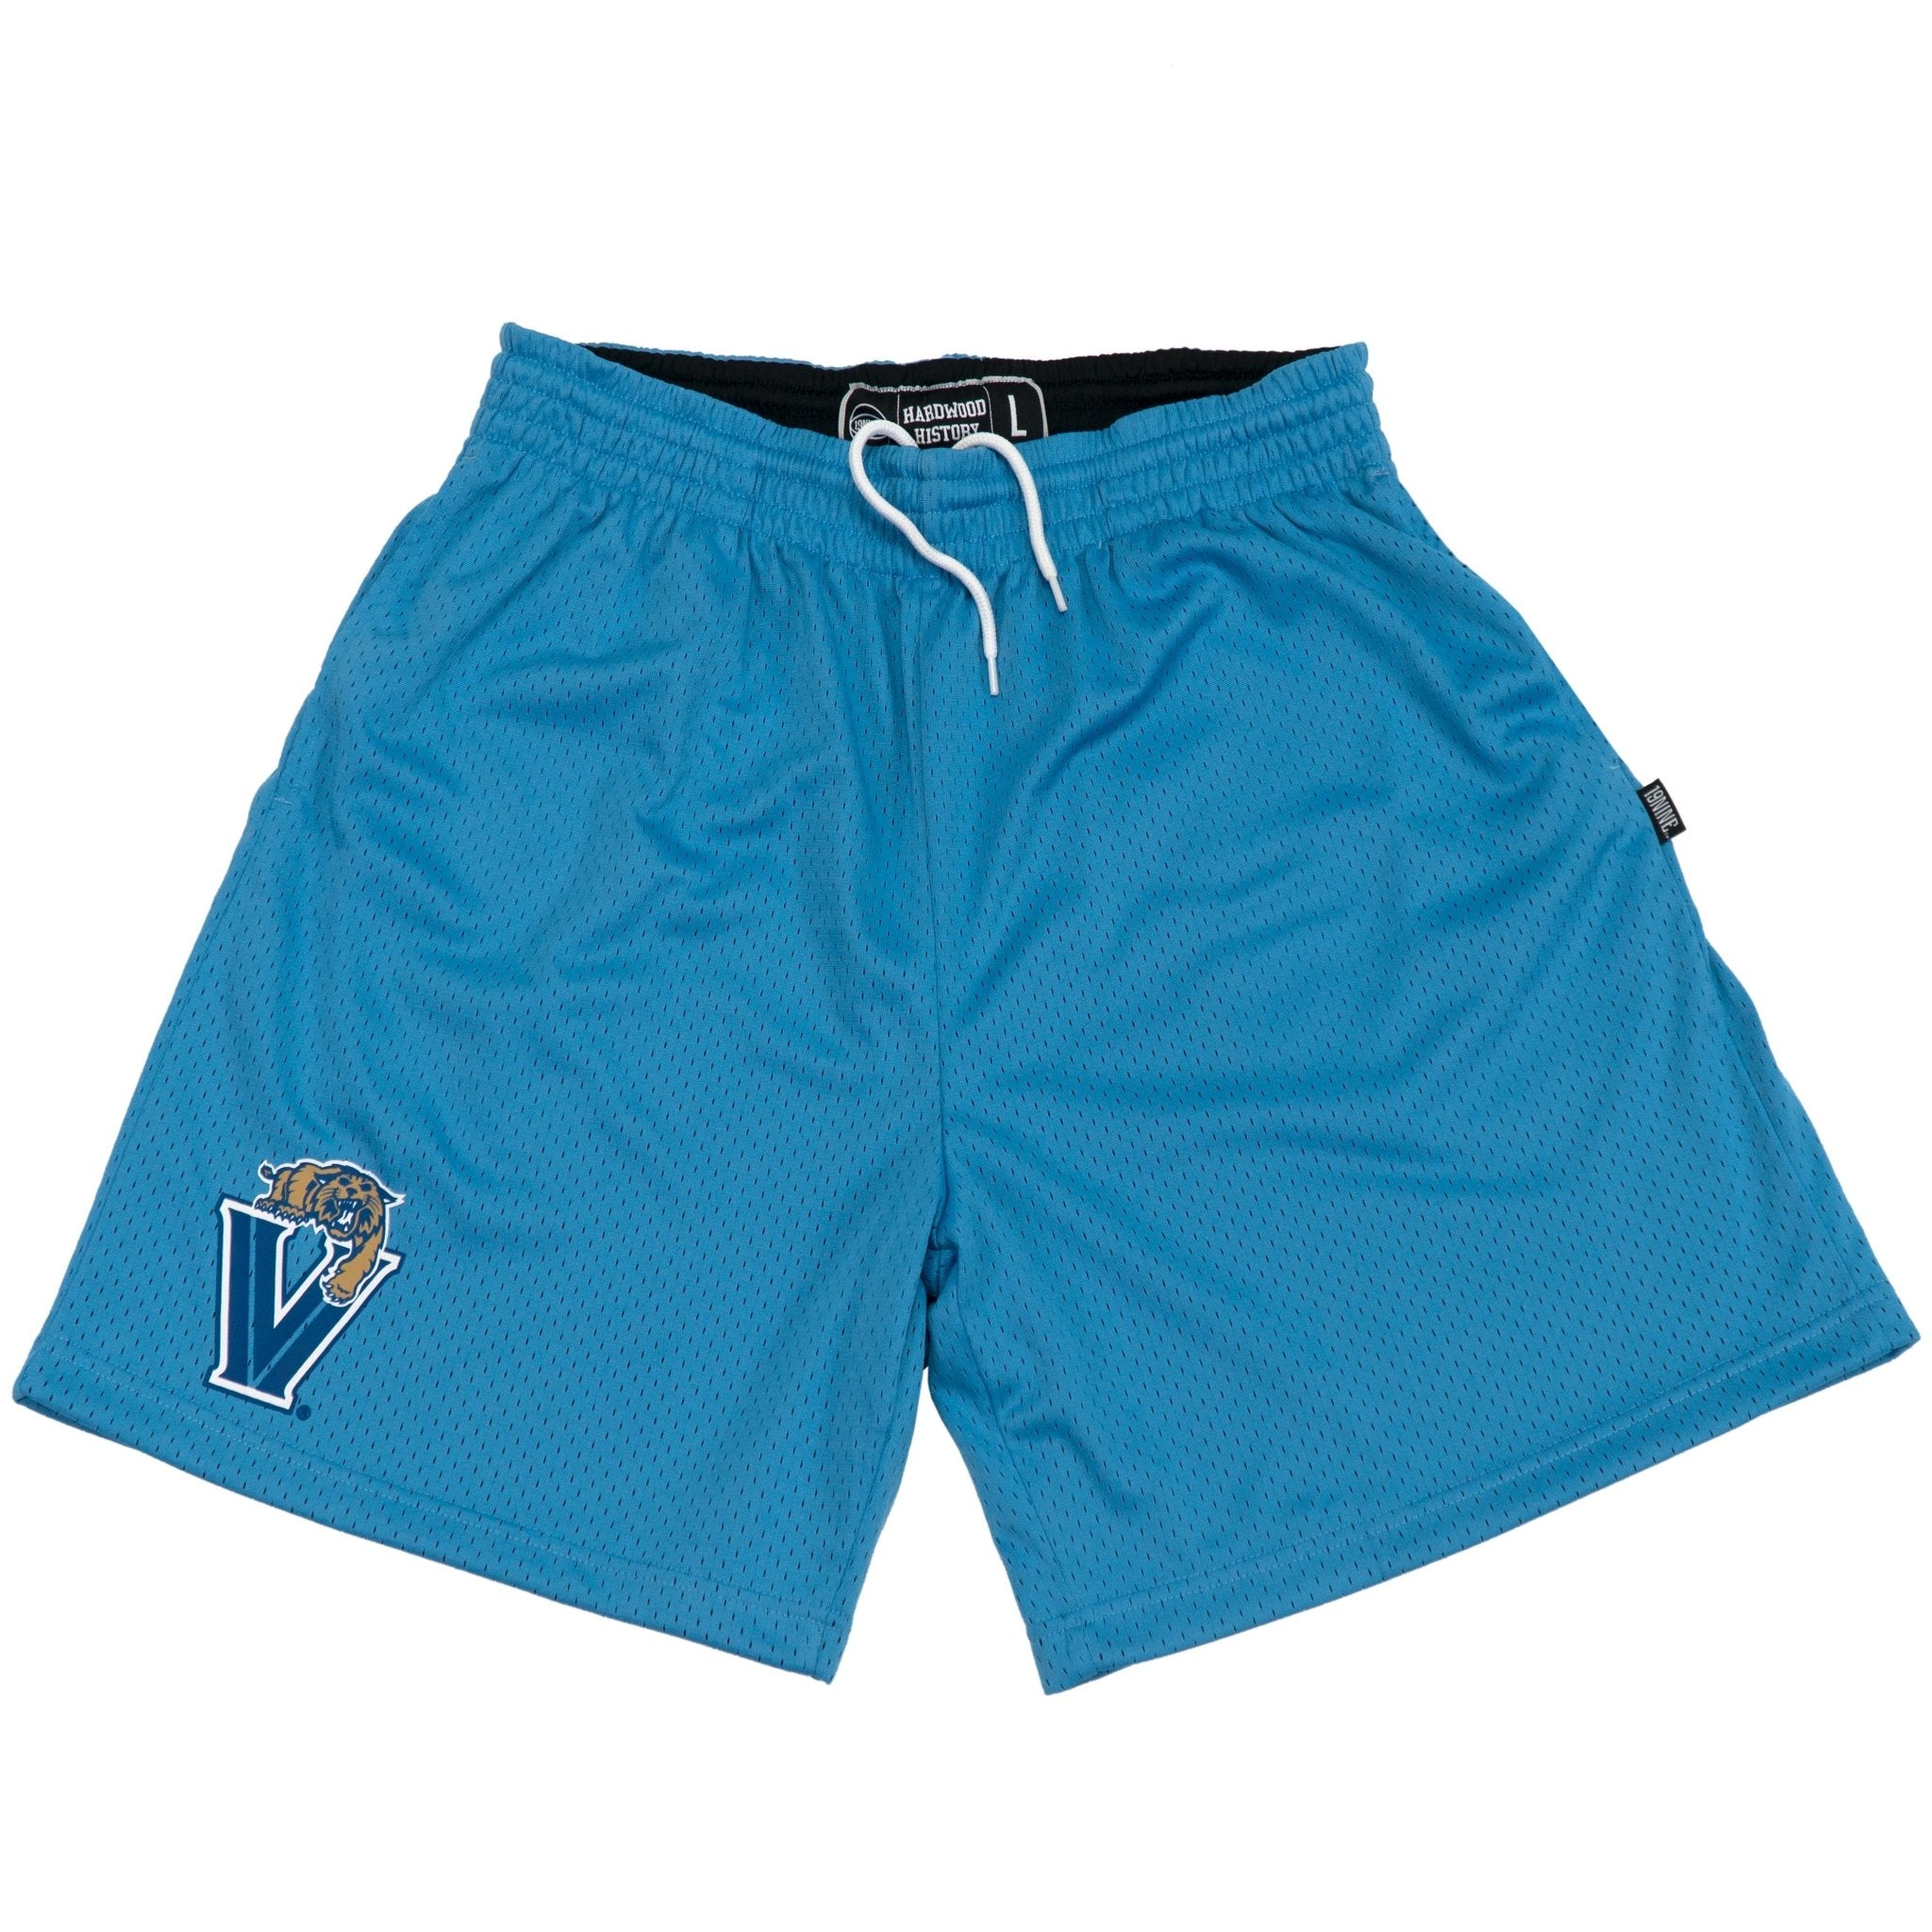 Villanova Wildcats Retro Practice Shorts - SLAM